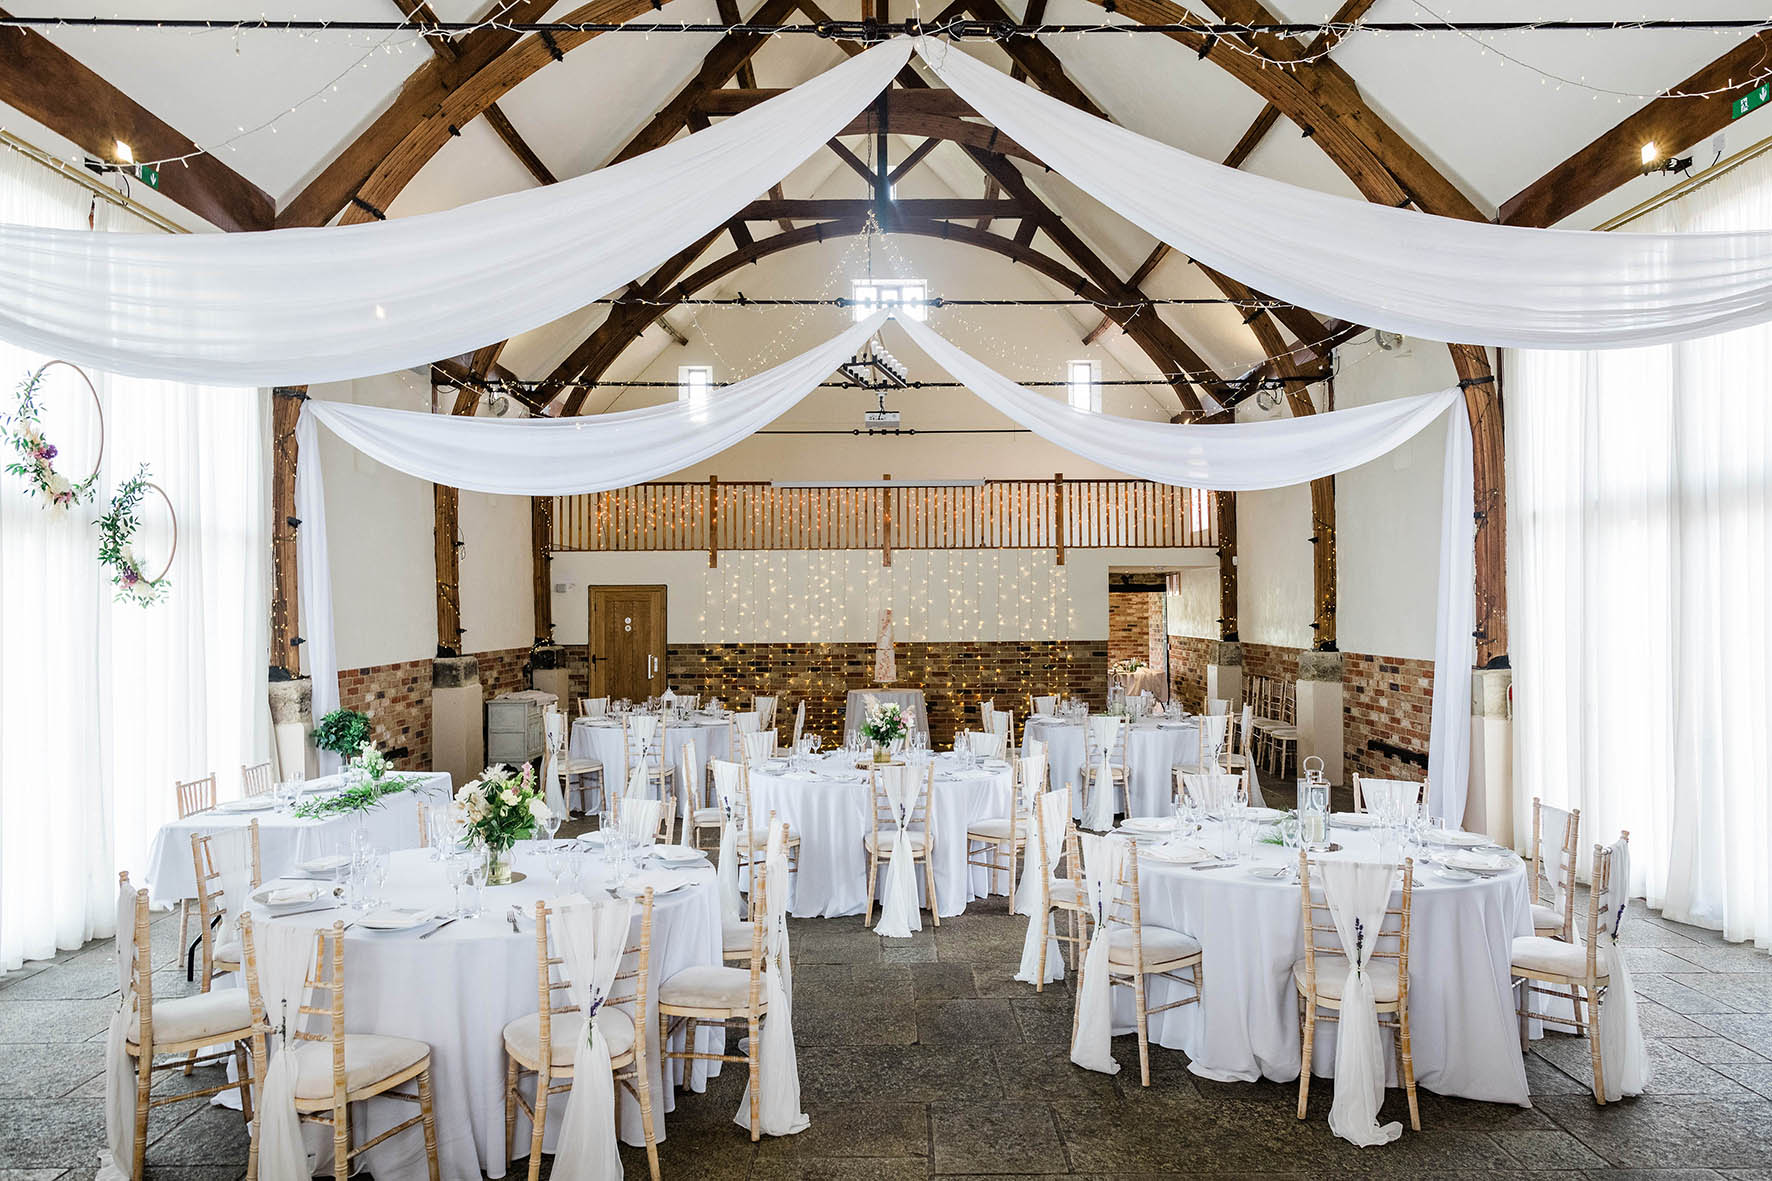 Dreamy Drapes in our Granary